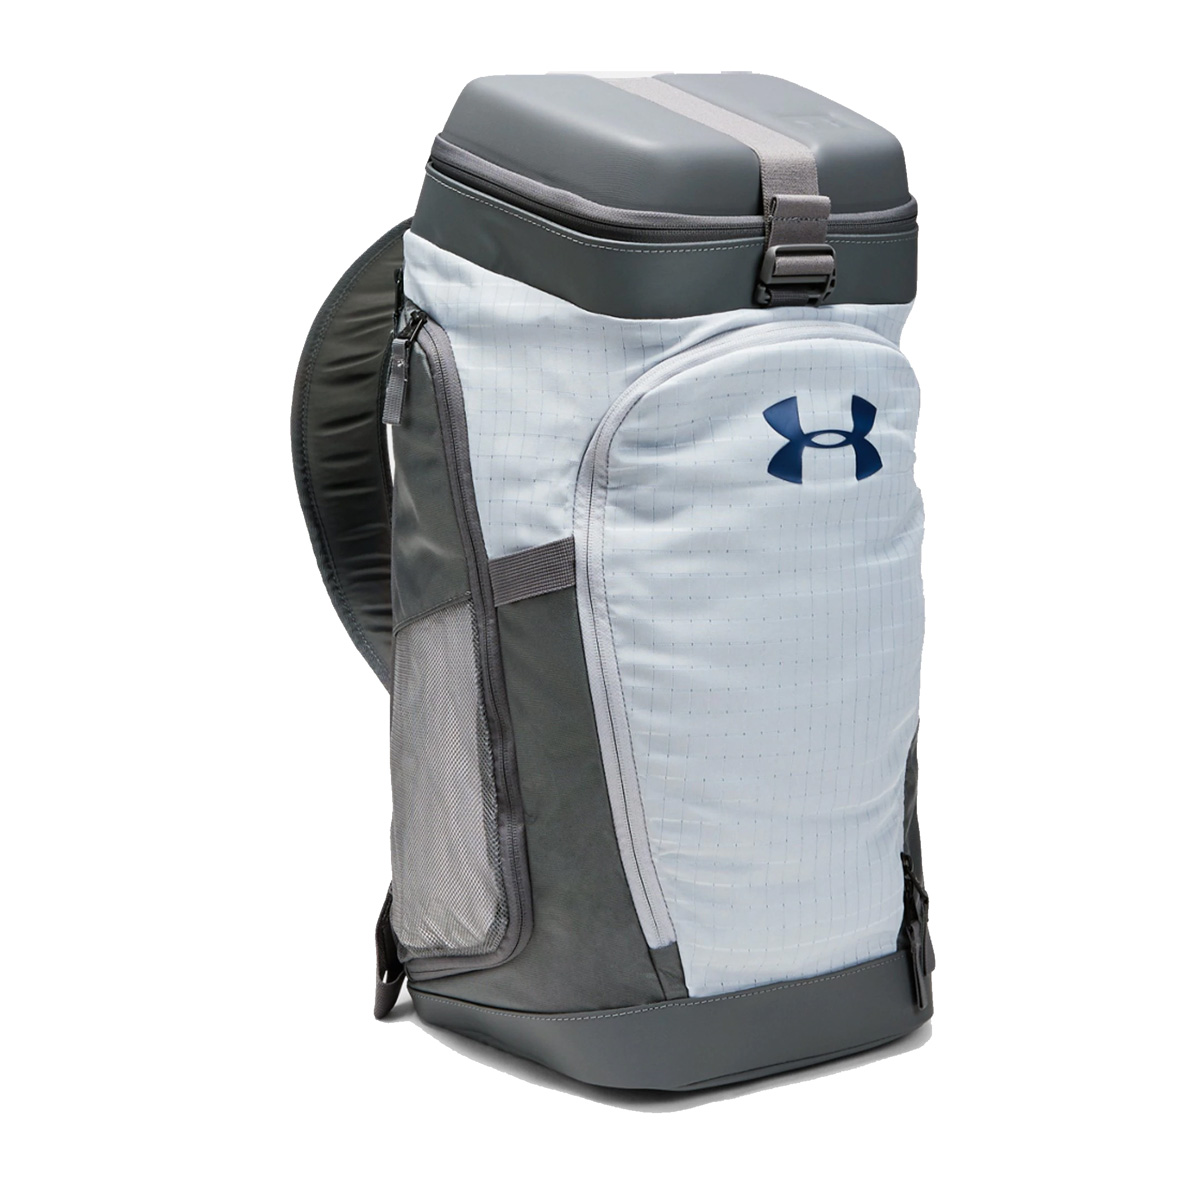 6d789ada00f Under Armour Own The Gym Duffle Bag – Mod Grey | Sports Bags ...